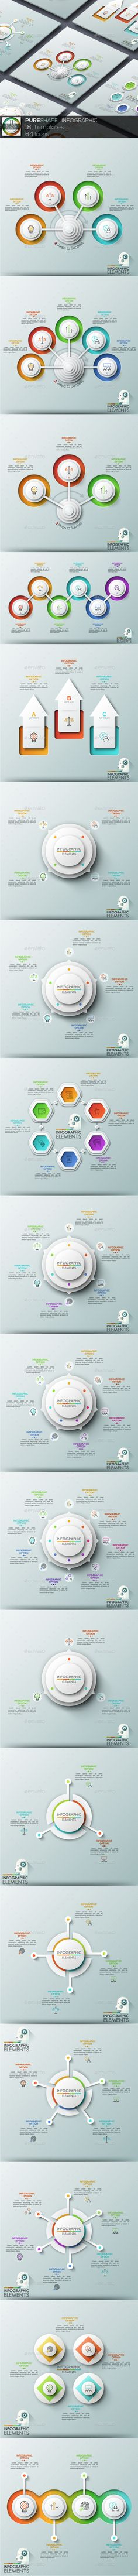 Pure Shape Infographic. Set 11 - #Infographics Download here: https://graphicriver.net/item/pure-shape-infographic-set-11/20447882?ref=alena994